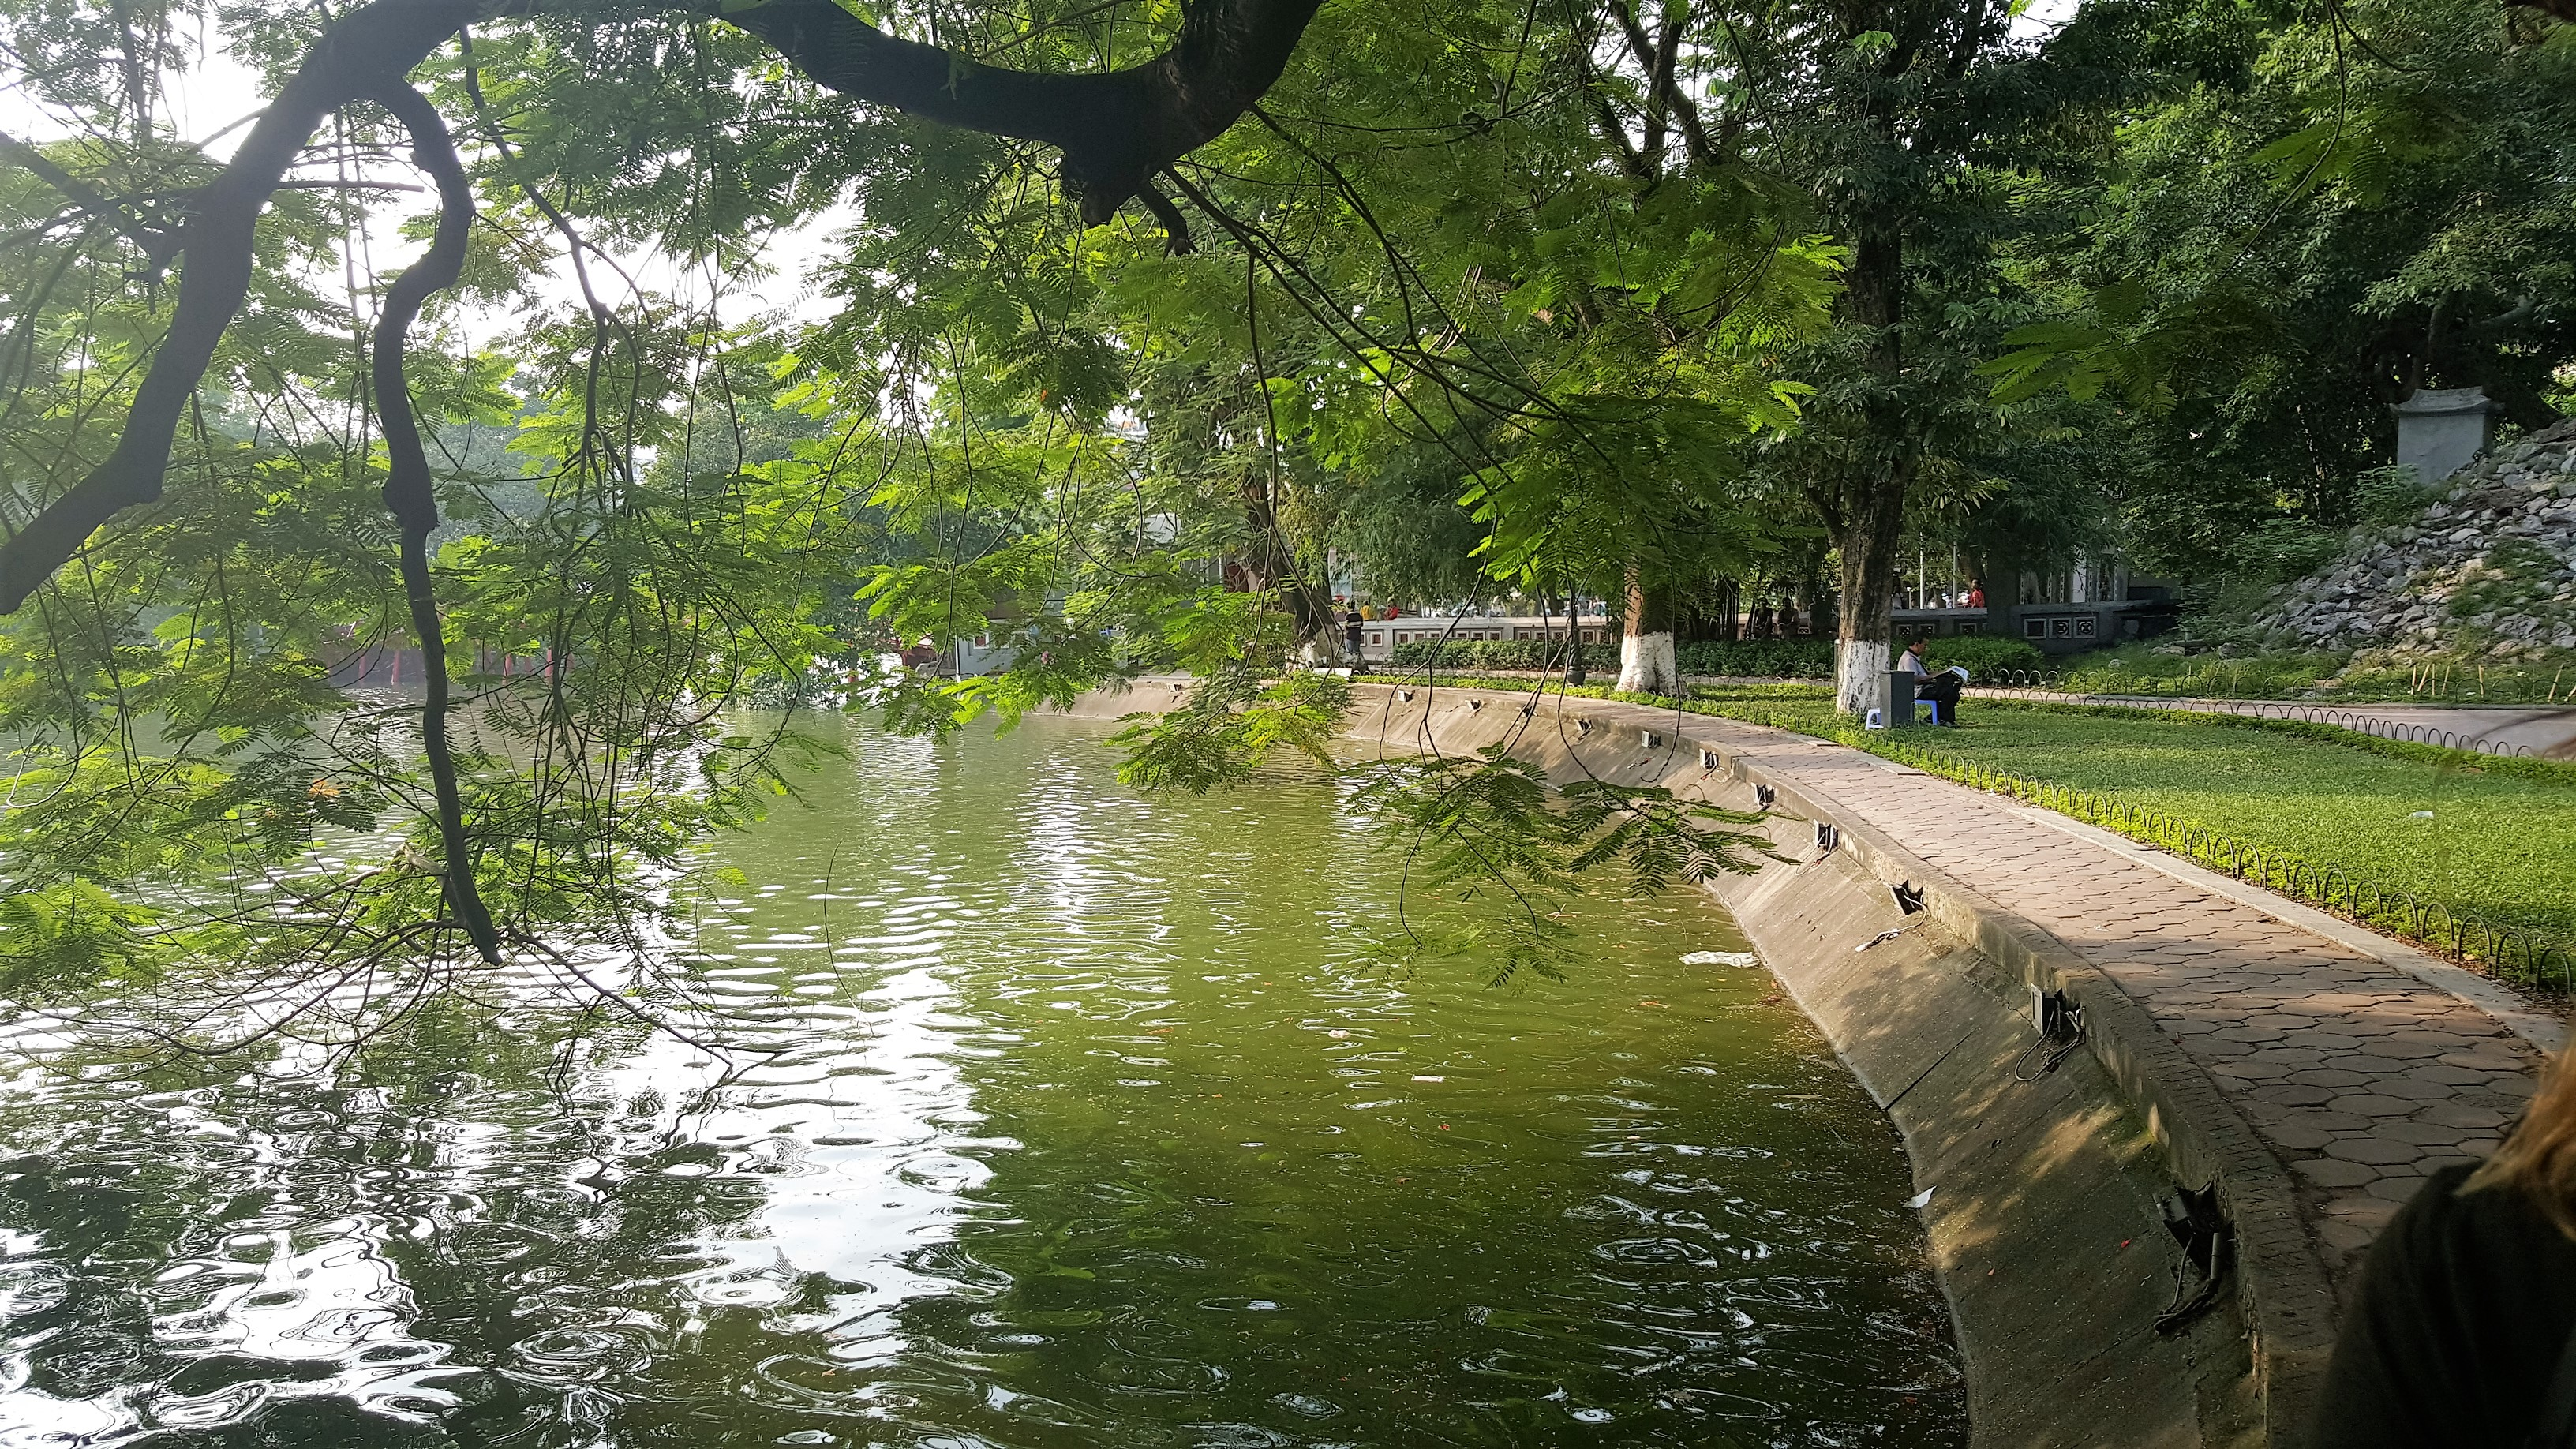 A view across a lake in Hanoi, Vietnam